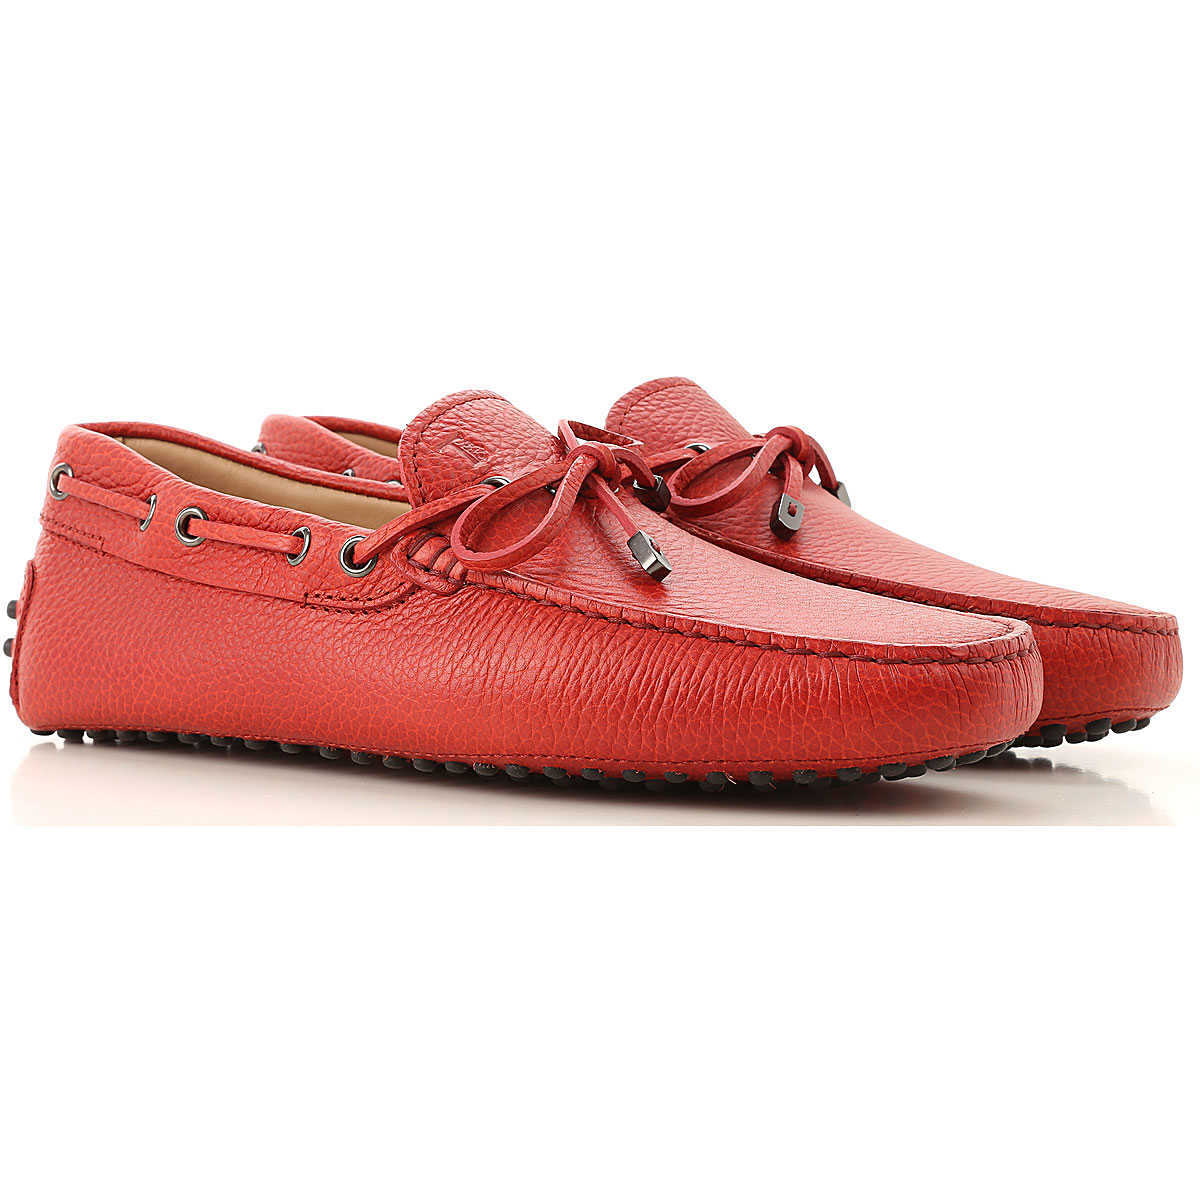 Tods Loafers for Men On Sale Red DK - GOOFASH - Mens LOAFERS